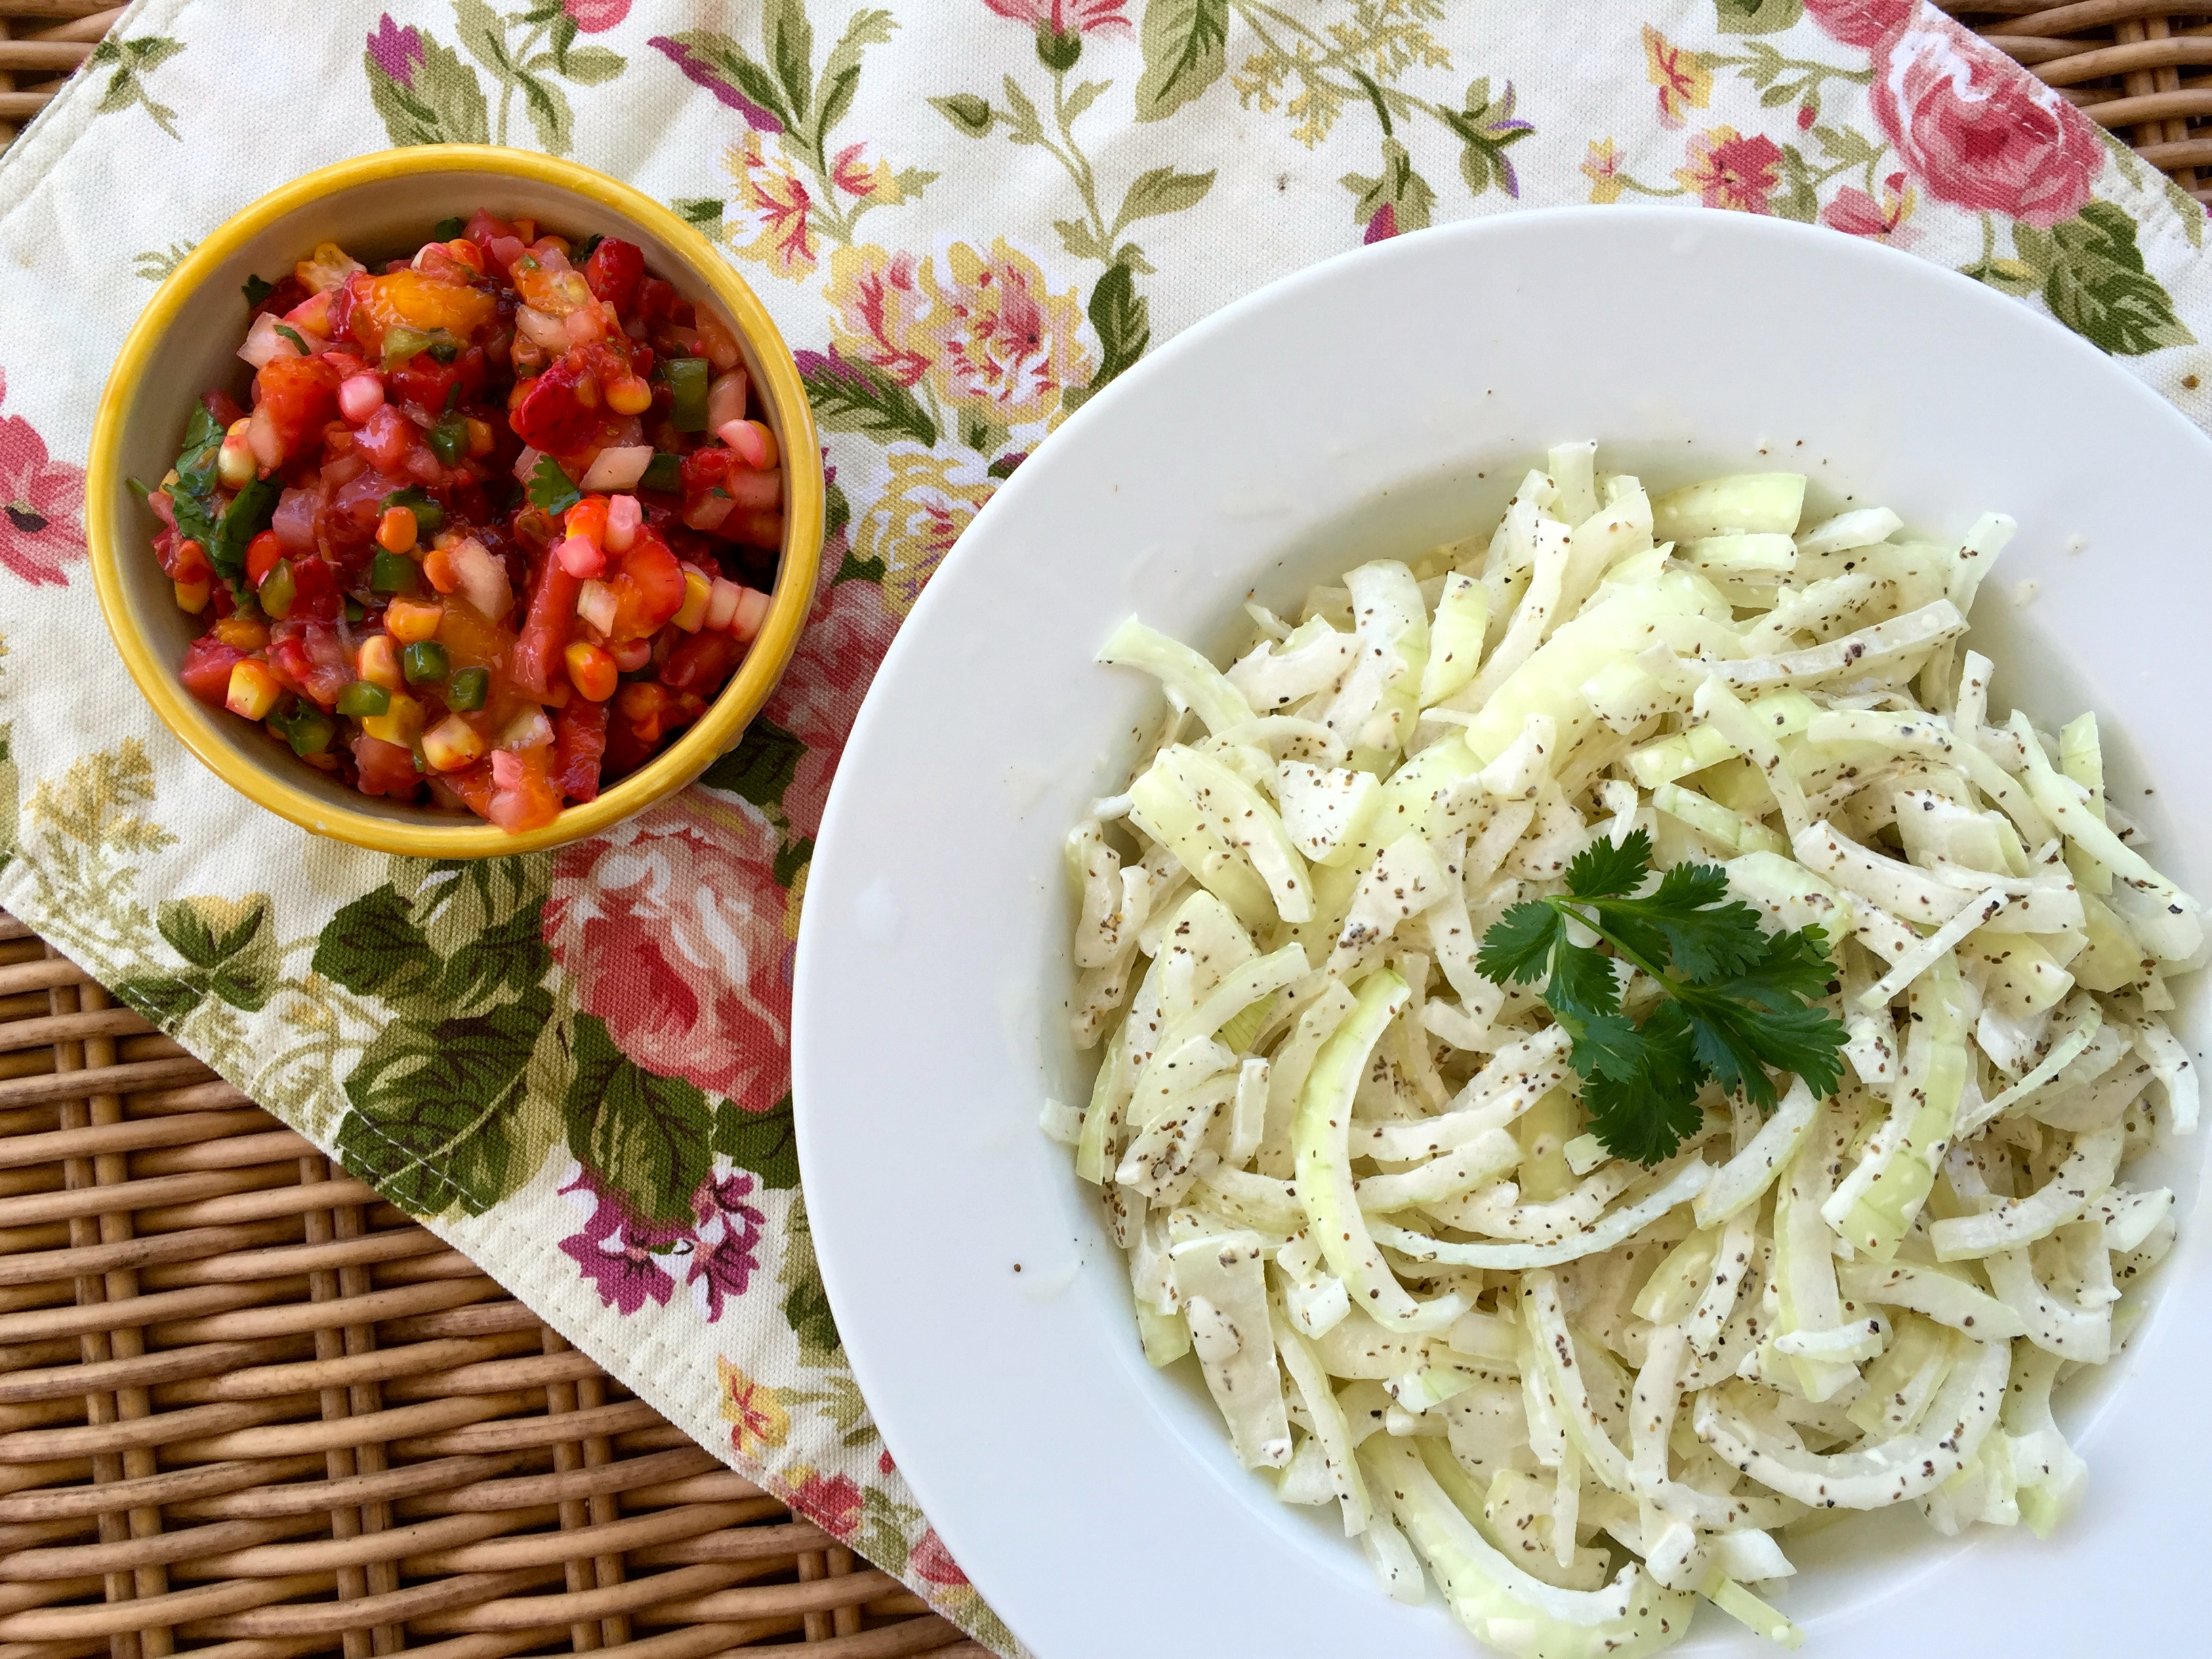 Strawberry Jalapeño Salsa and Sweet Vidalia Onion Slaw: Perfect Sides for a Steamy Poolside BBQ!